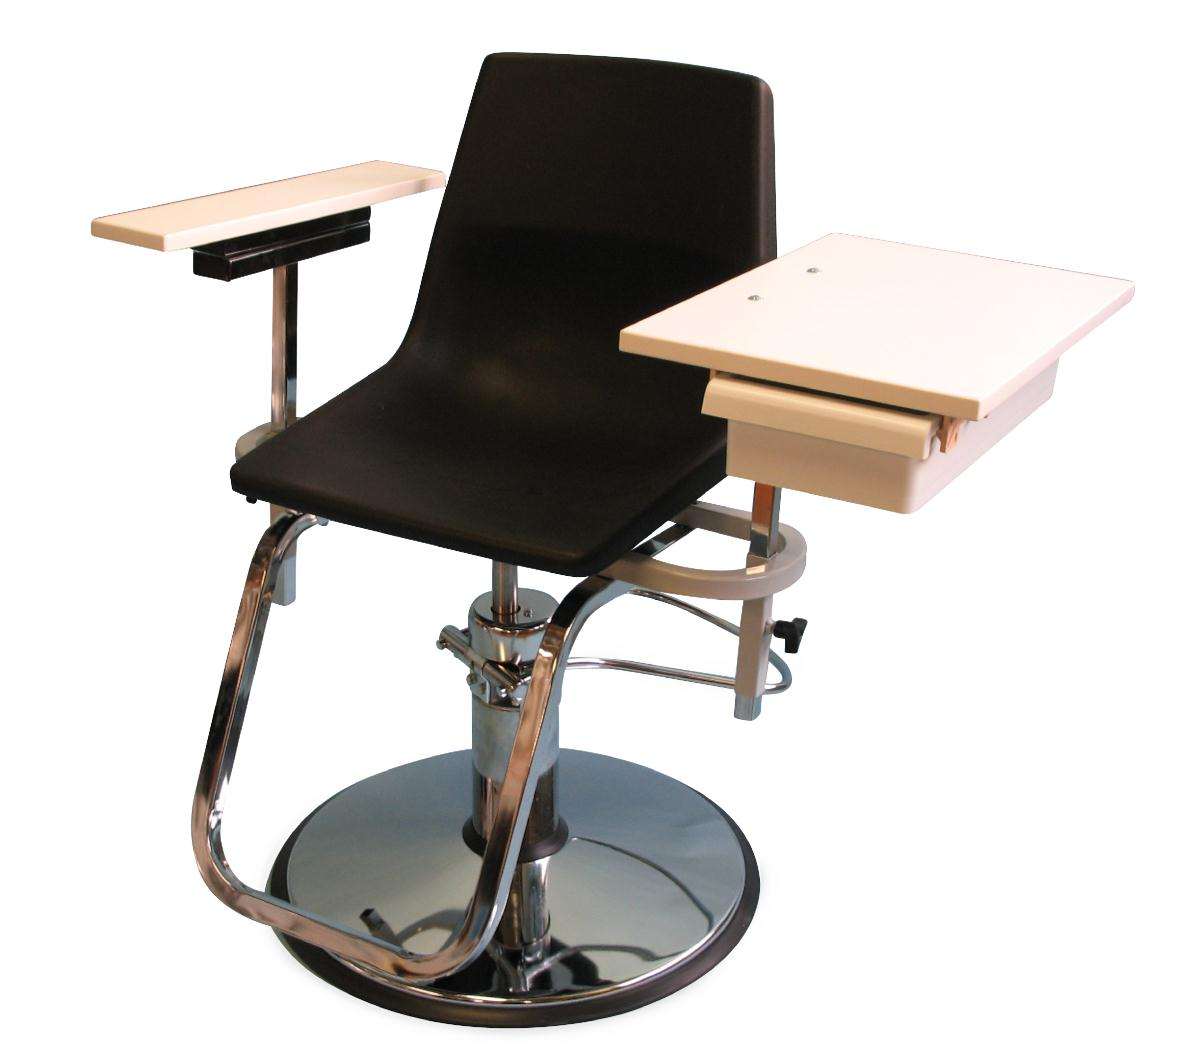 blood draw chair where to buy covers in montreal drawing chairs products medline industries inc hydraulic lift by brandt